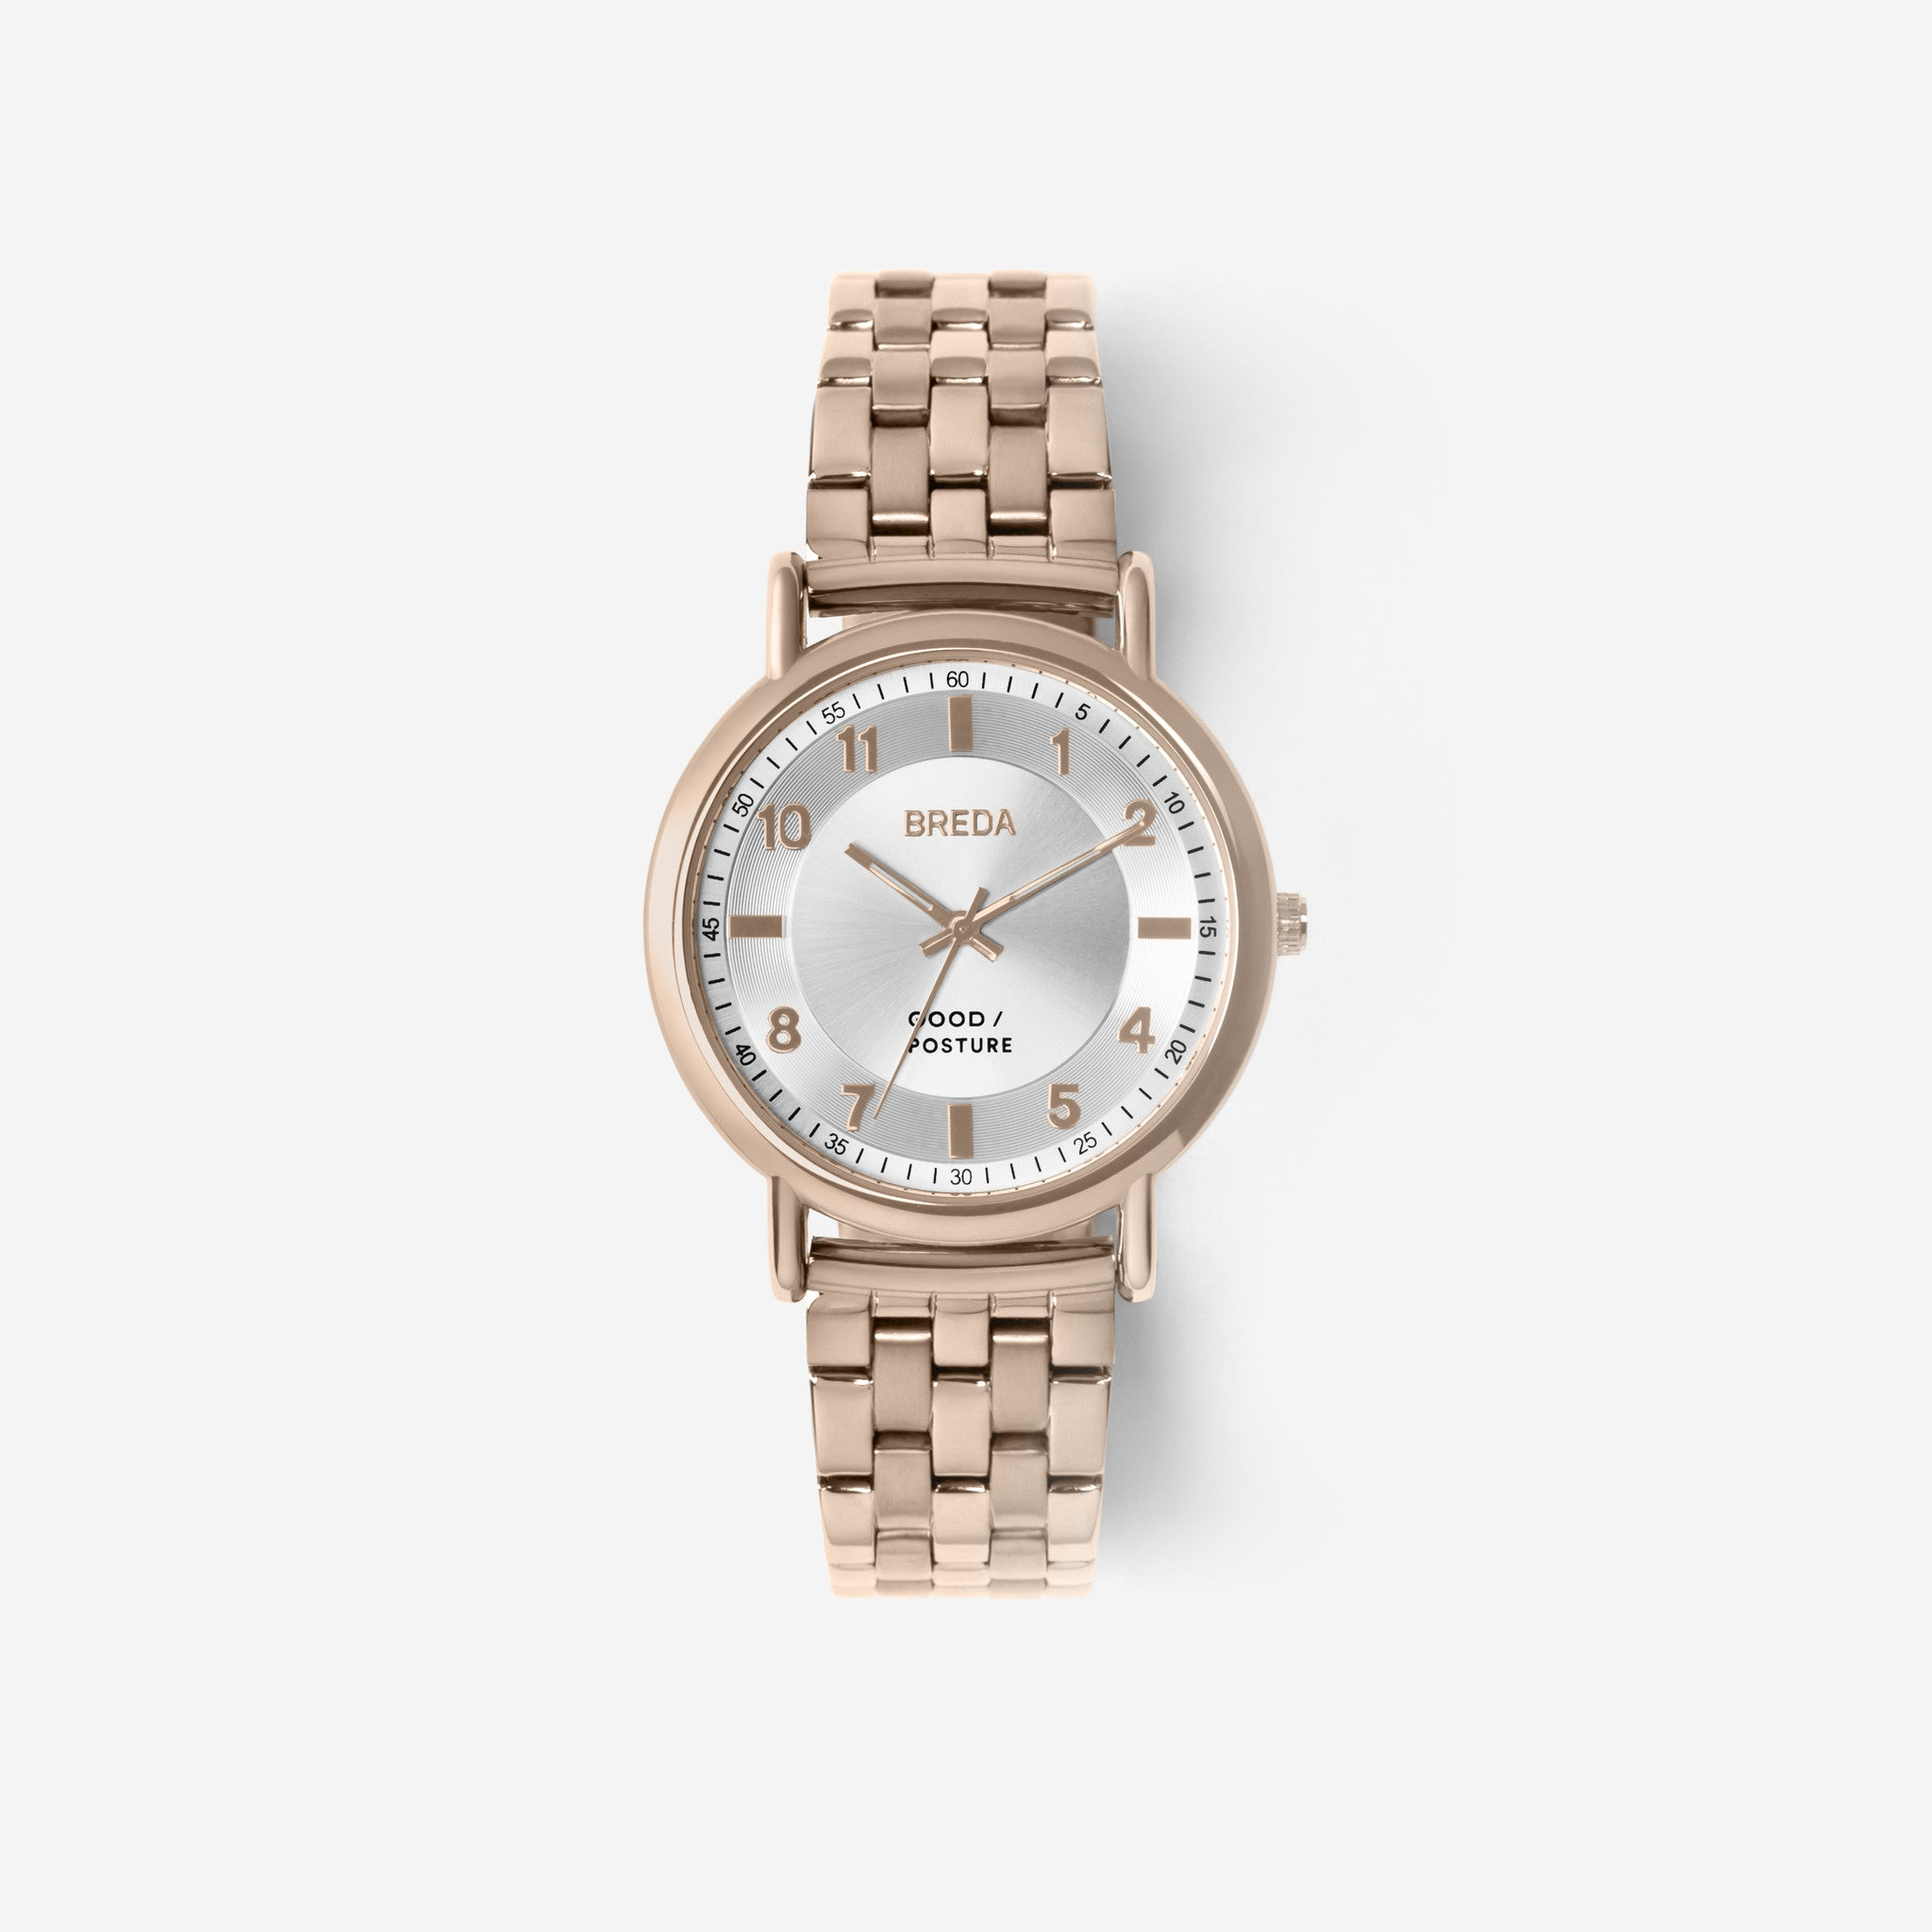 //cdn.shopify.com/s/files/1/0879/6650/products/BREDA-Good-Posture-Theophilus-Martins-Blossom-5017c-Rose-Gold-Watch-Front_1024x1024.jpg?v=1490821659